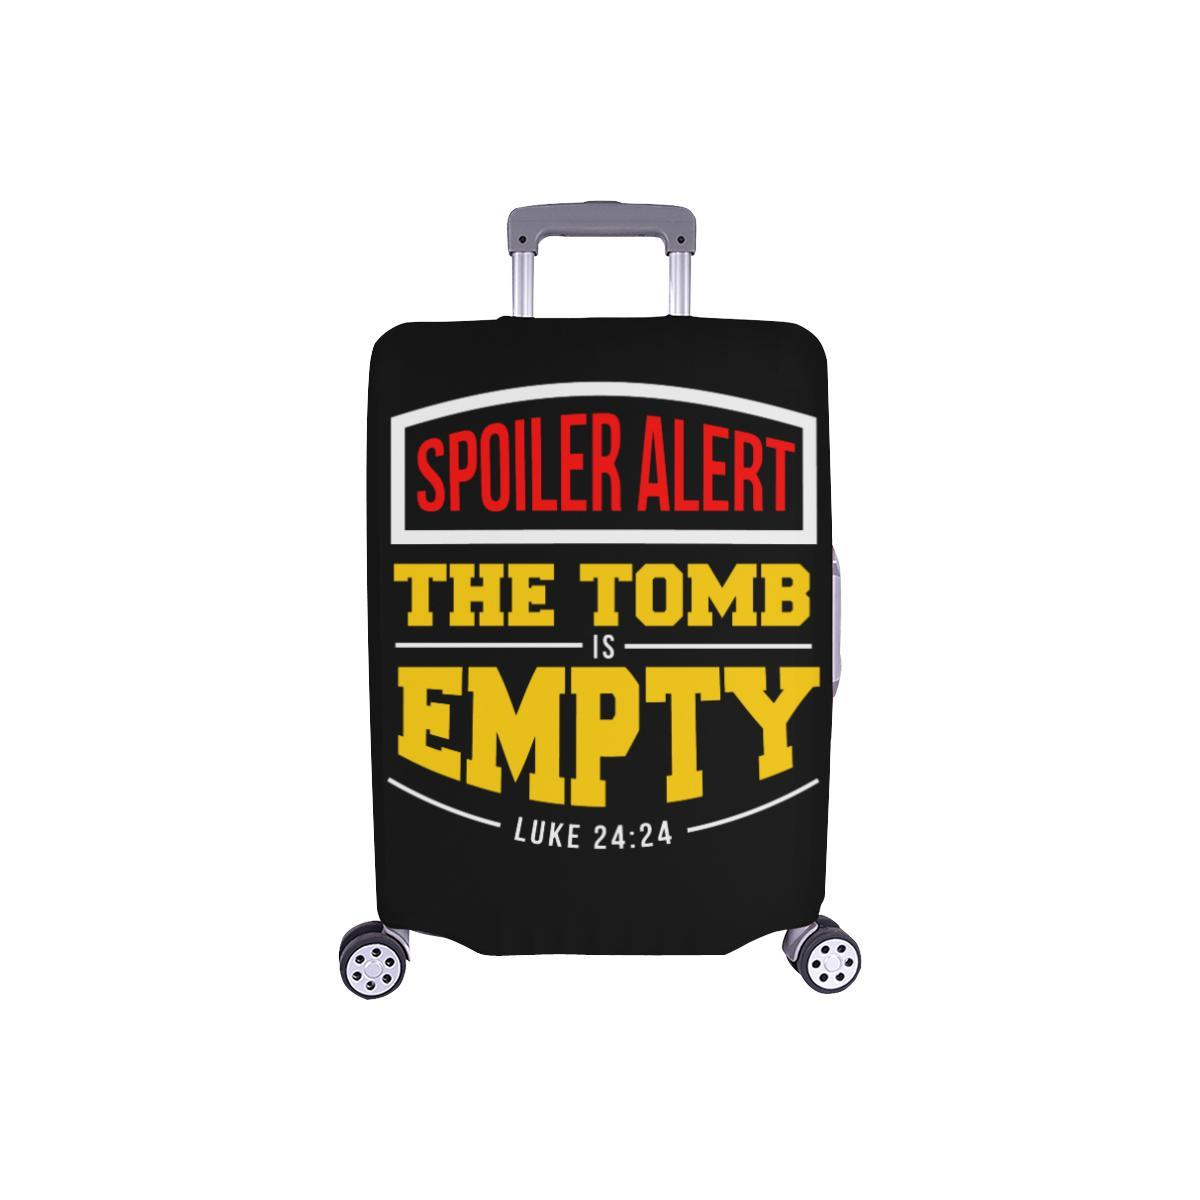 Spoiler Alert Tomb Is Empty Luke 24:24 Christian Travel Luggage Cover Suitcase-S-Black-JoyHip.Com